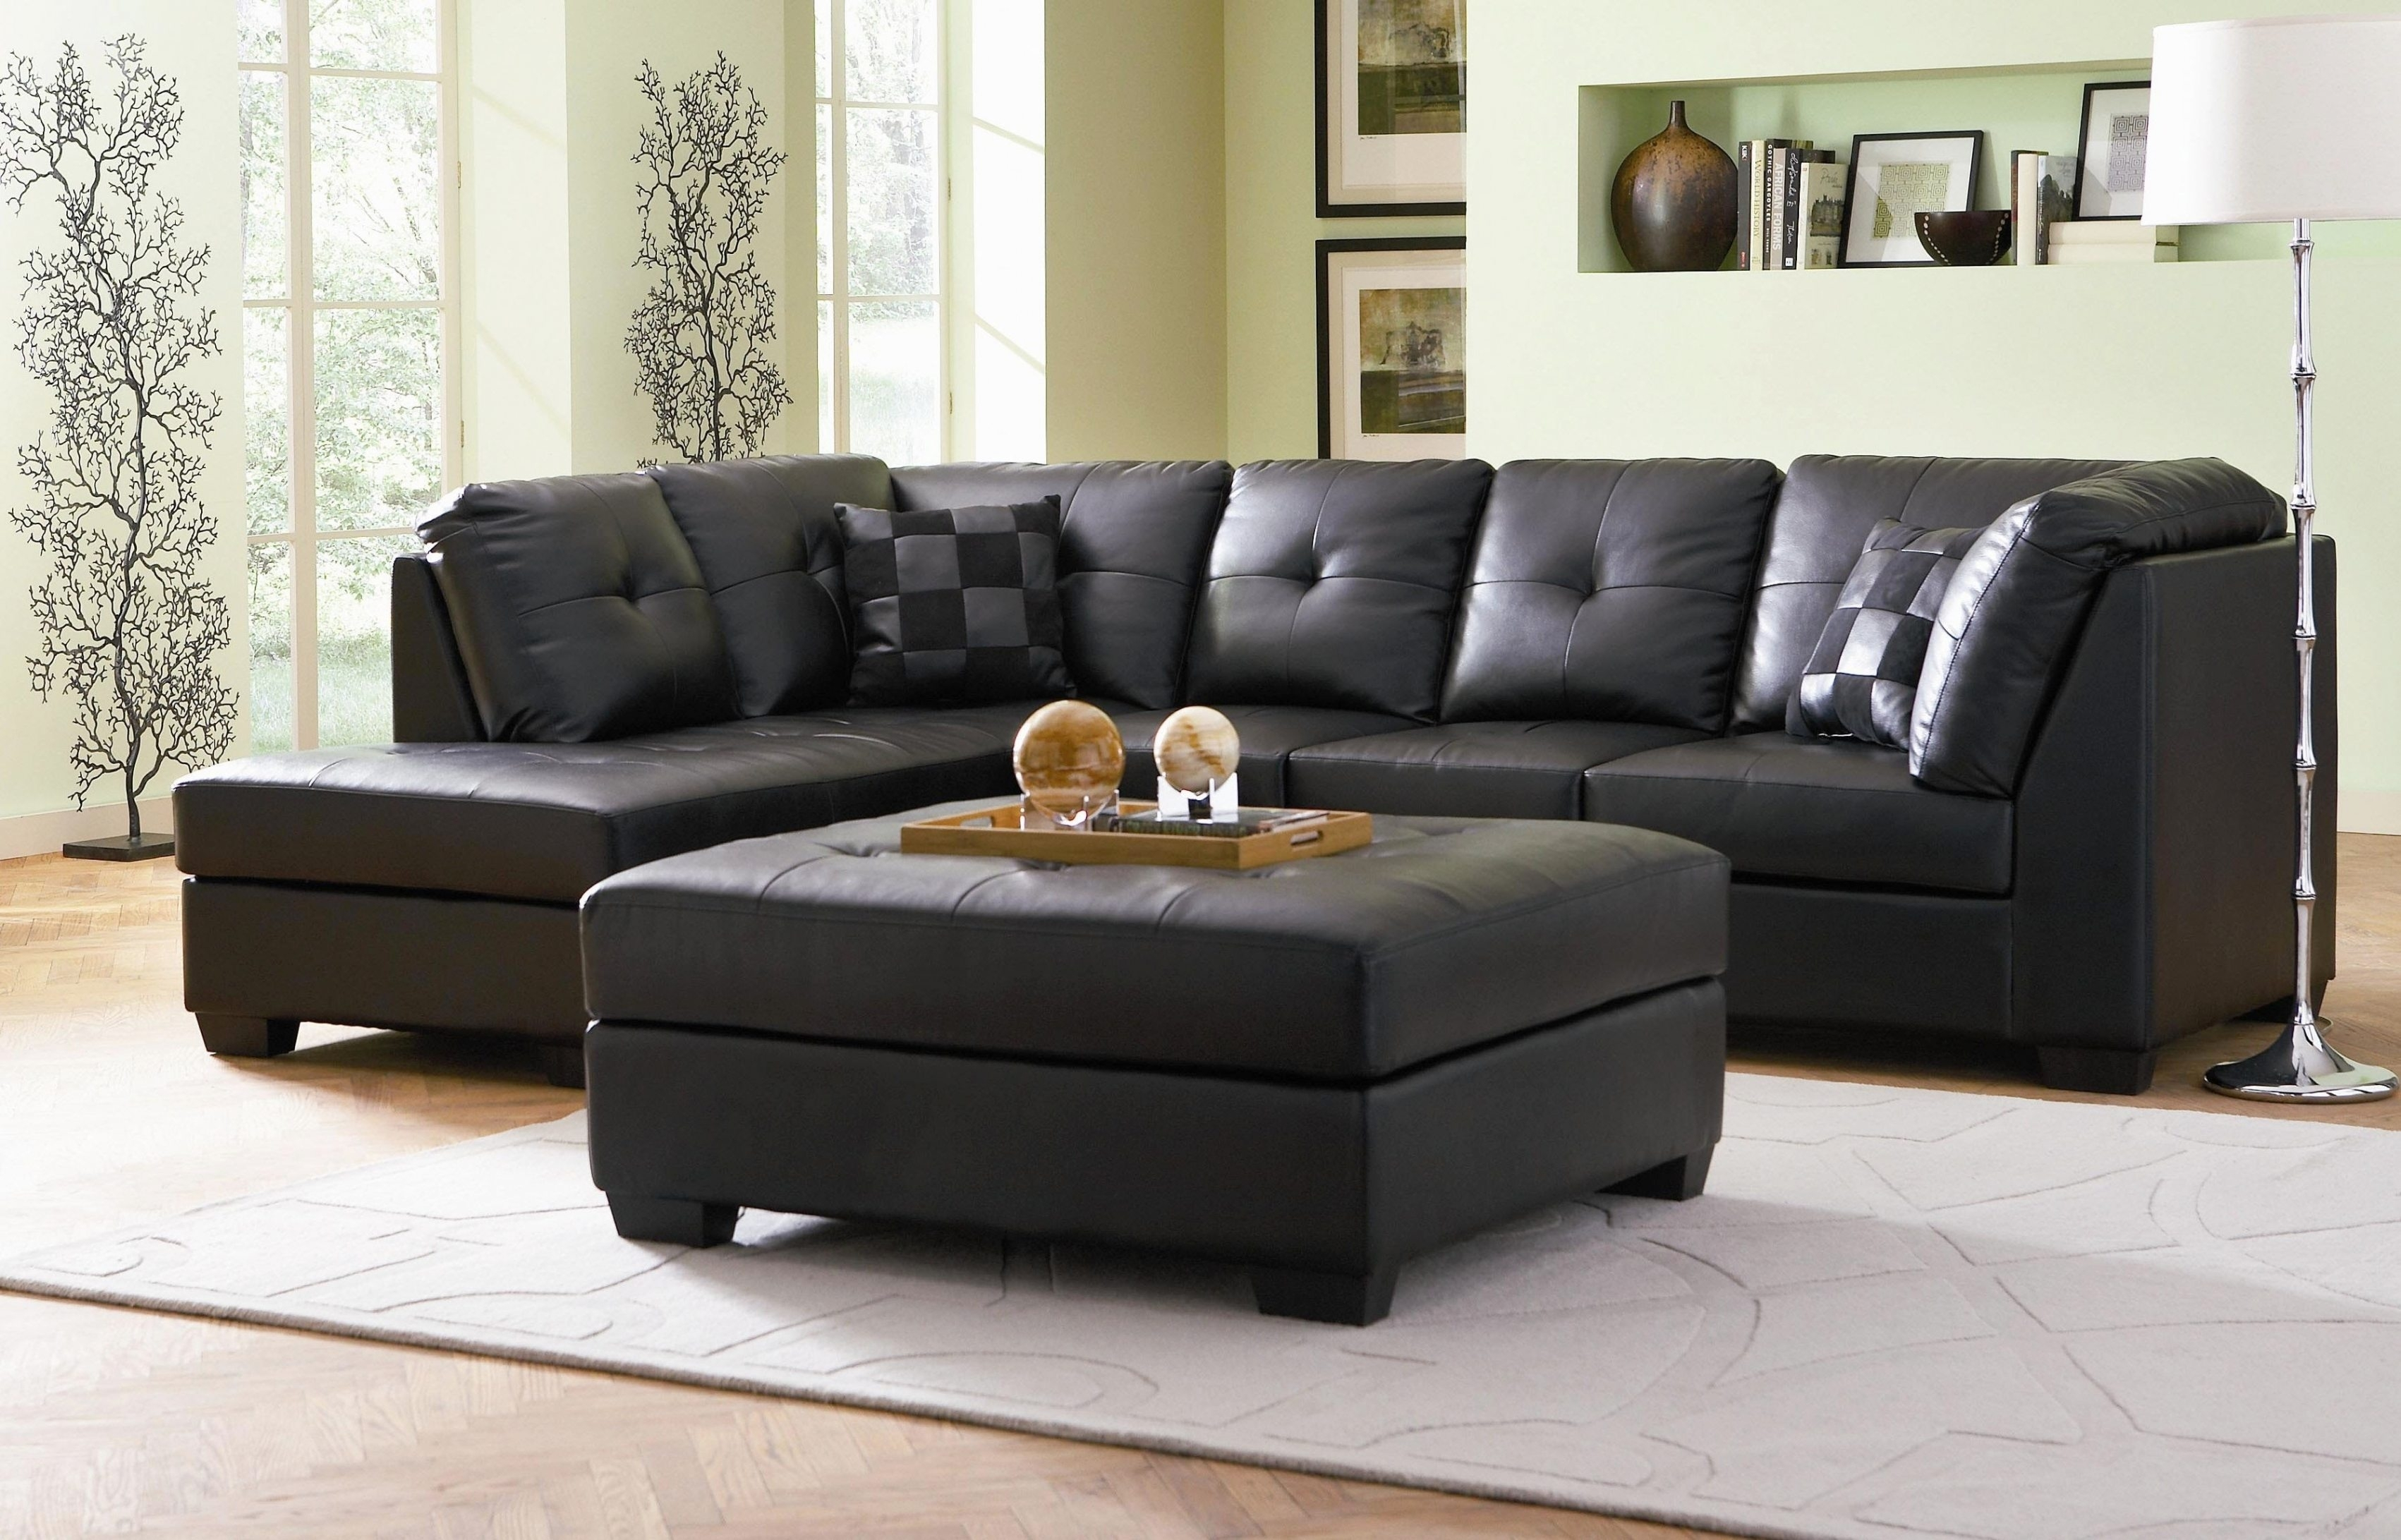 Couches For Under 200 #3 Cheap Sectional Sofas Under 300 | Bobs regarding Sectional Sofas Under 200 (Image 5 of 10)